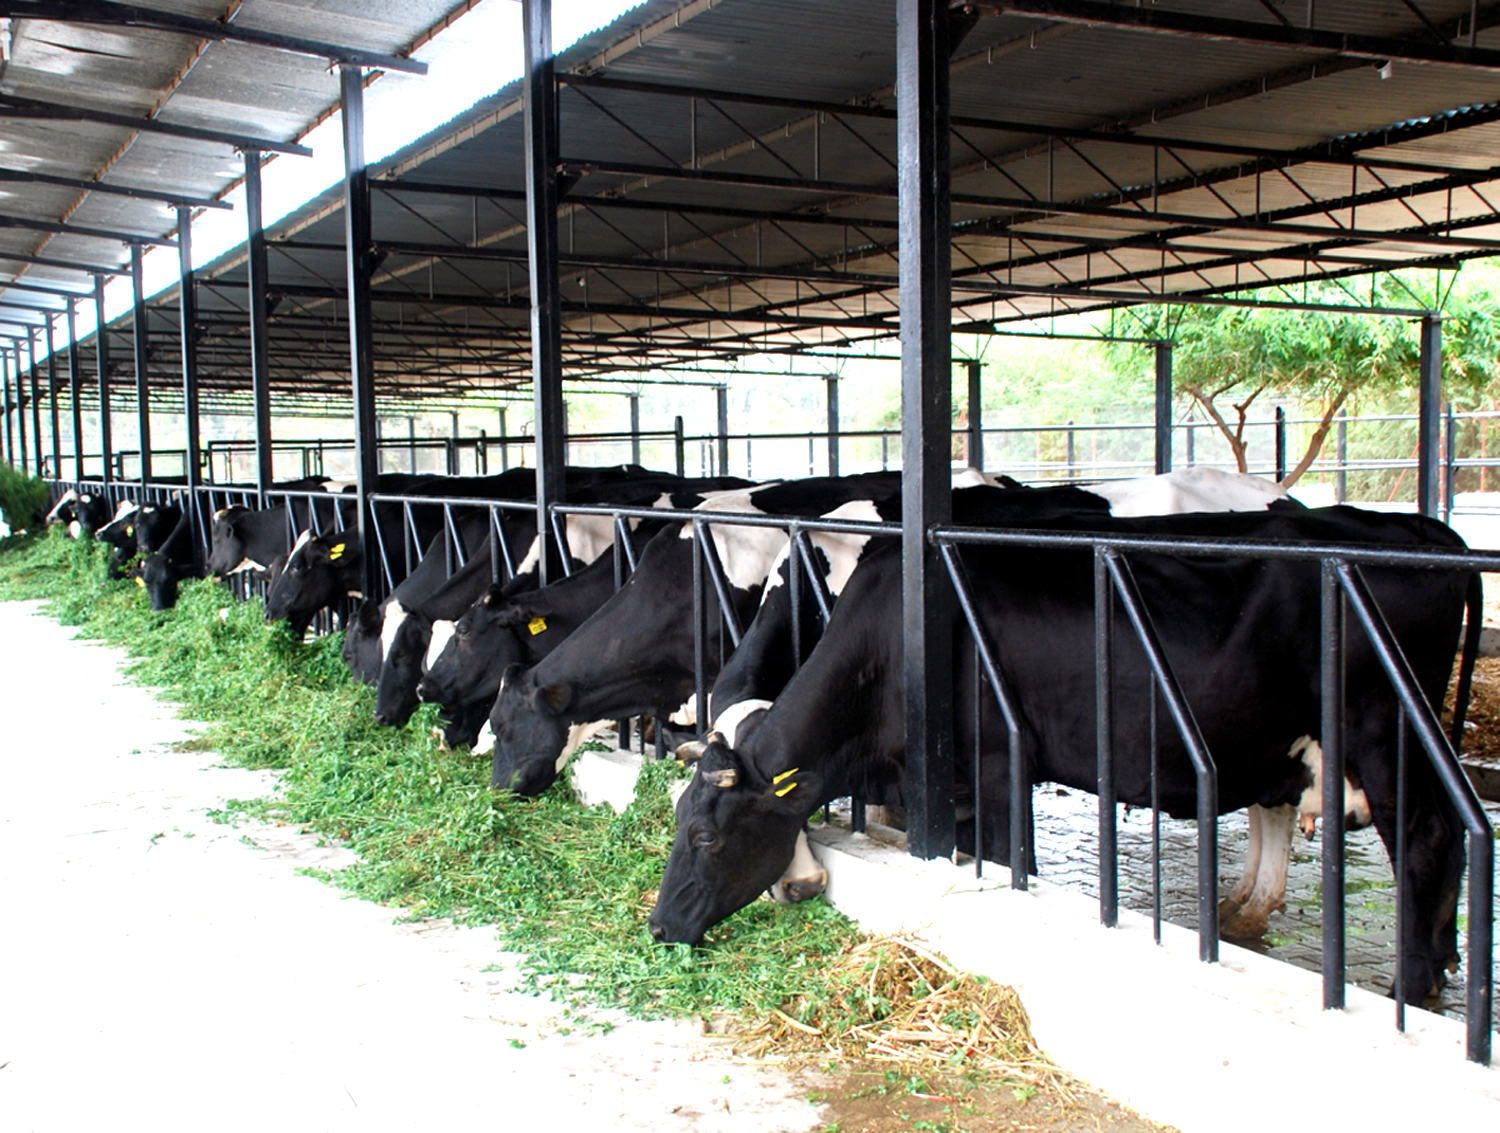 dairy farming, dairy farming business, commercial dairy farming, commercial dairy farming business, dairy farming business in India, commercial dairy farming in India, dairy farming business plan, dairy farming in India information